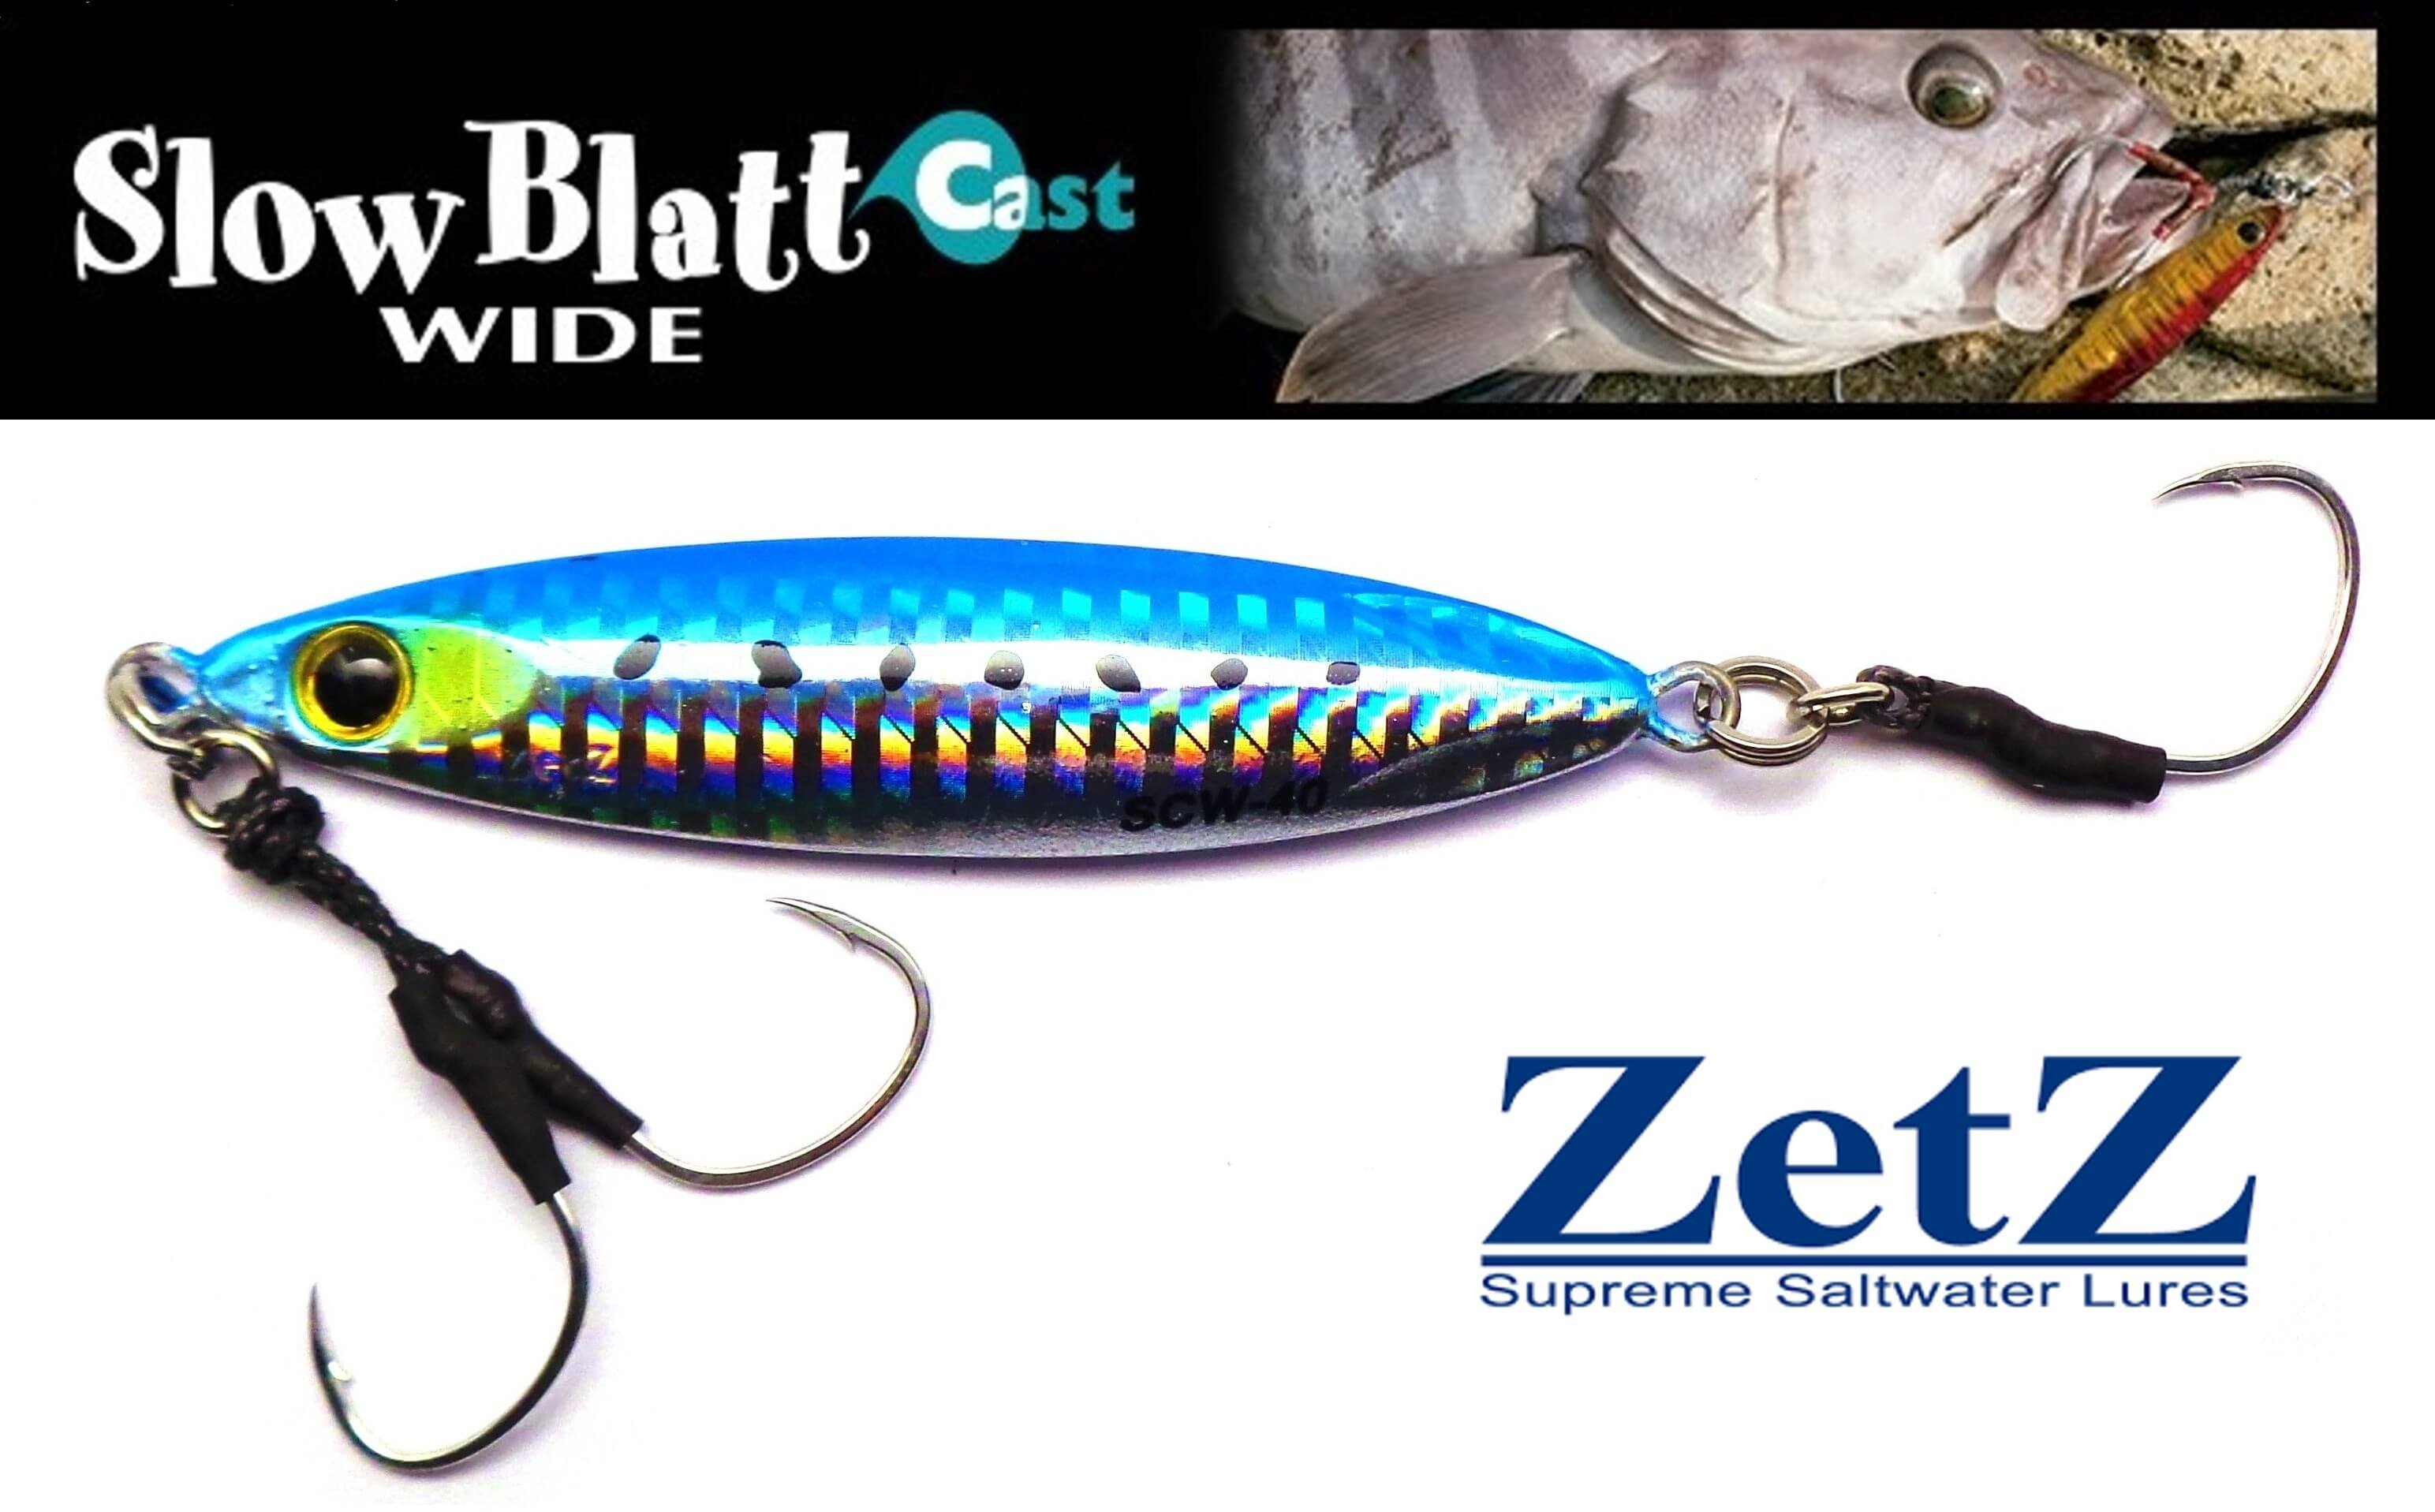 Zetz Slow Blatt Cast WIDE